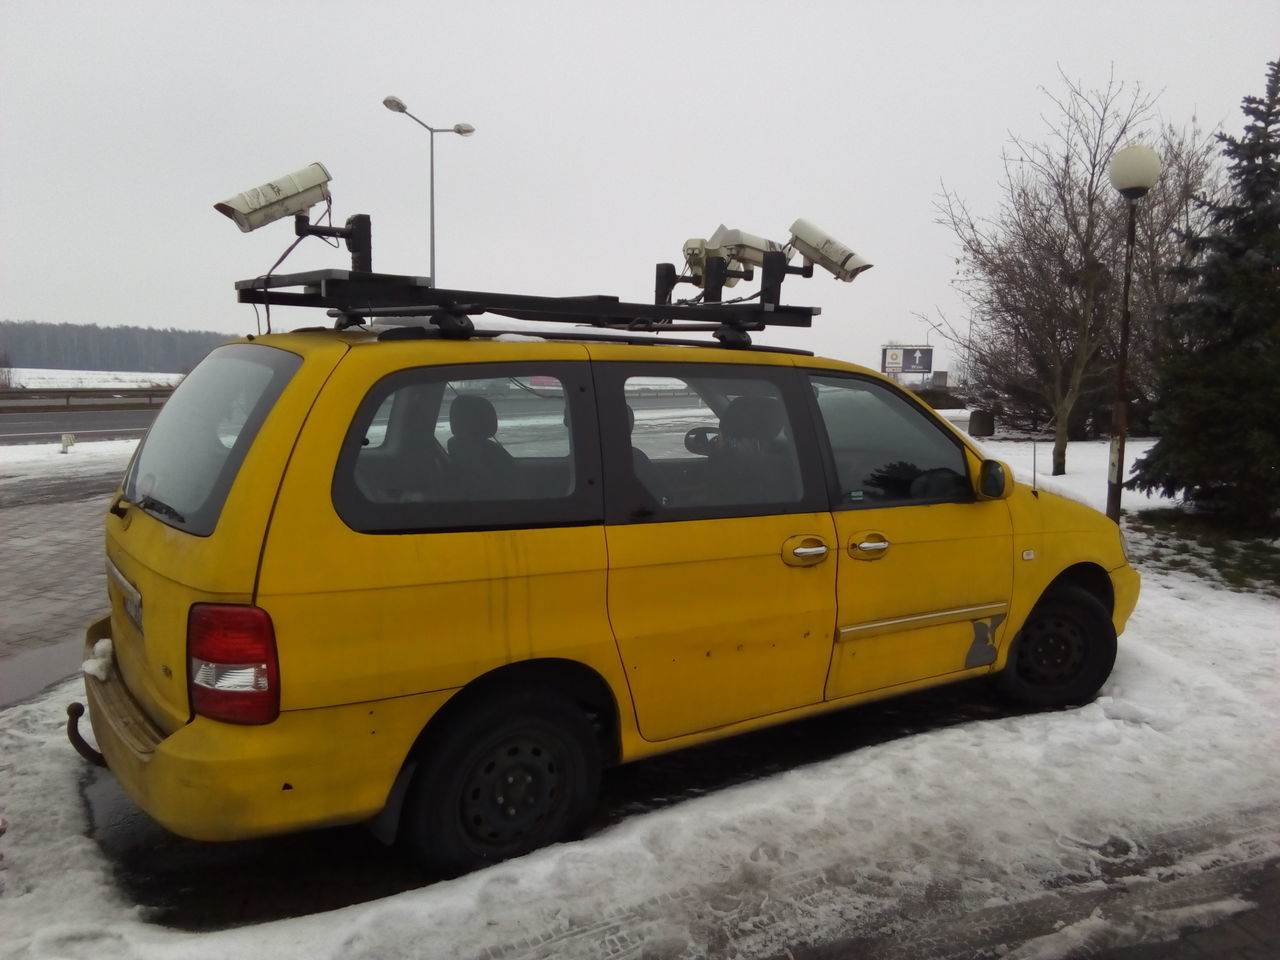 Adapted To The City Car Transportation No People Yellow Day Camerashootout Cold Temperature Winter Securitycam